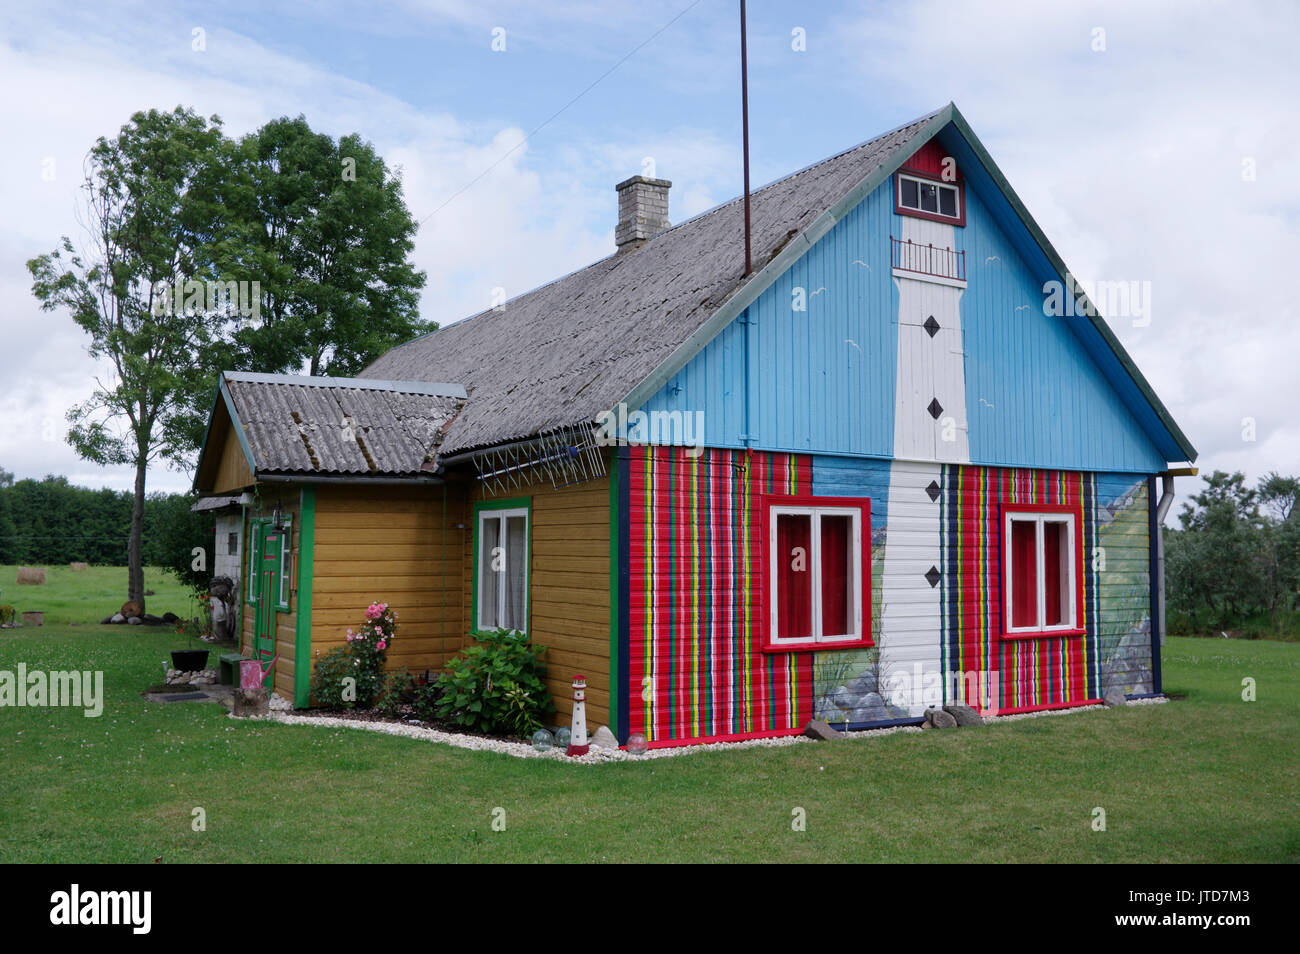 The facade of the House painted Kihnu skirt colors. Kihnu Island, Estonia 5th August 2017 Stock Photo